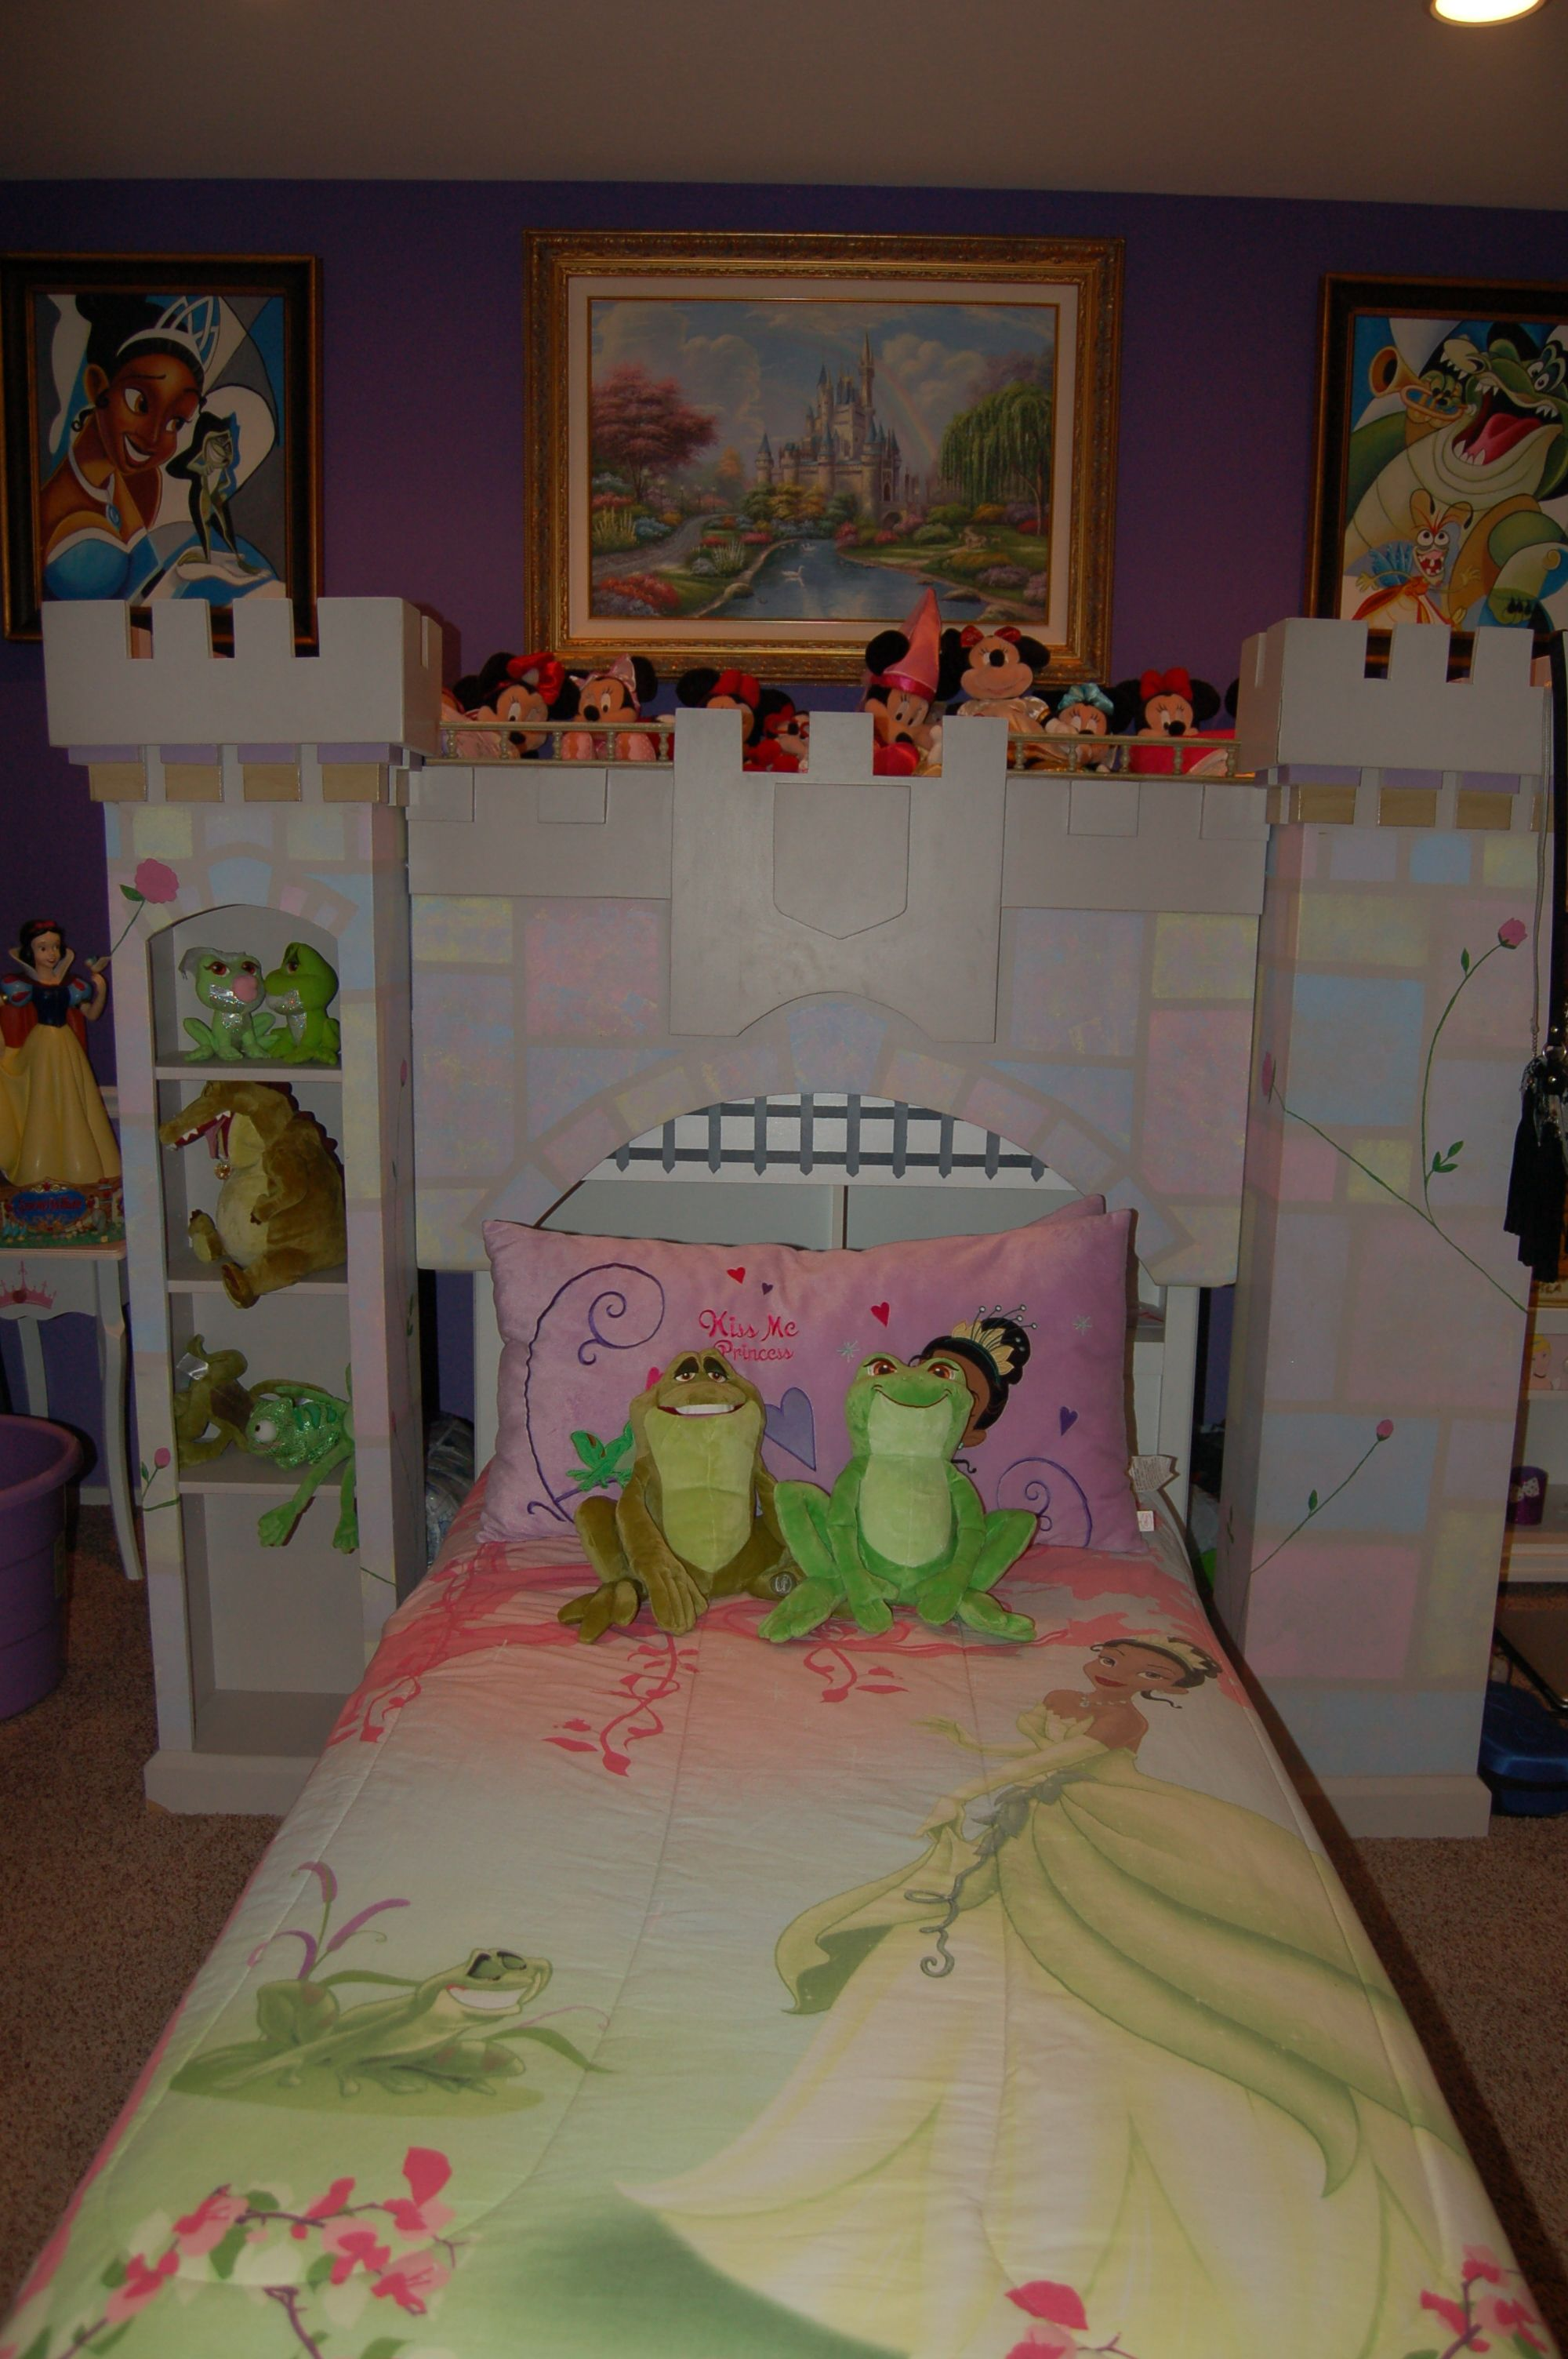 Disney Princess Bedroom And The Frog Decorating Www Mydisneylove